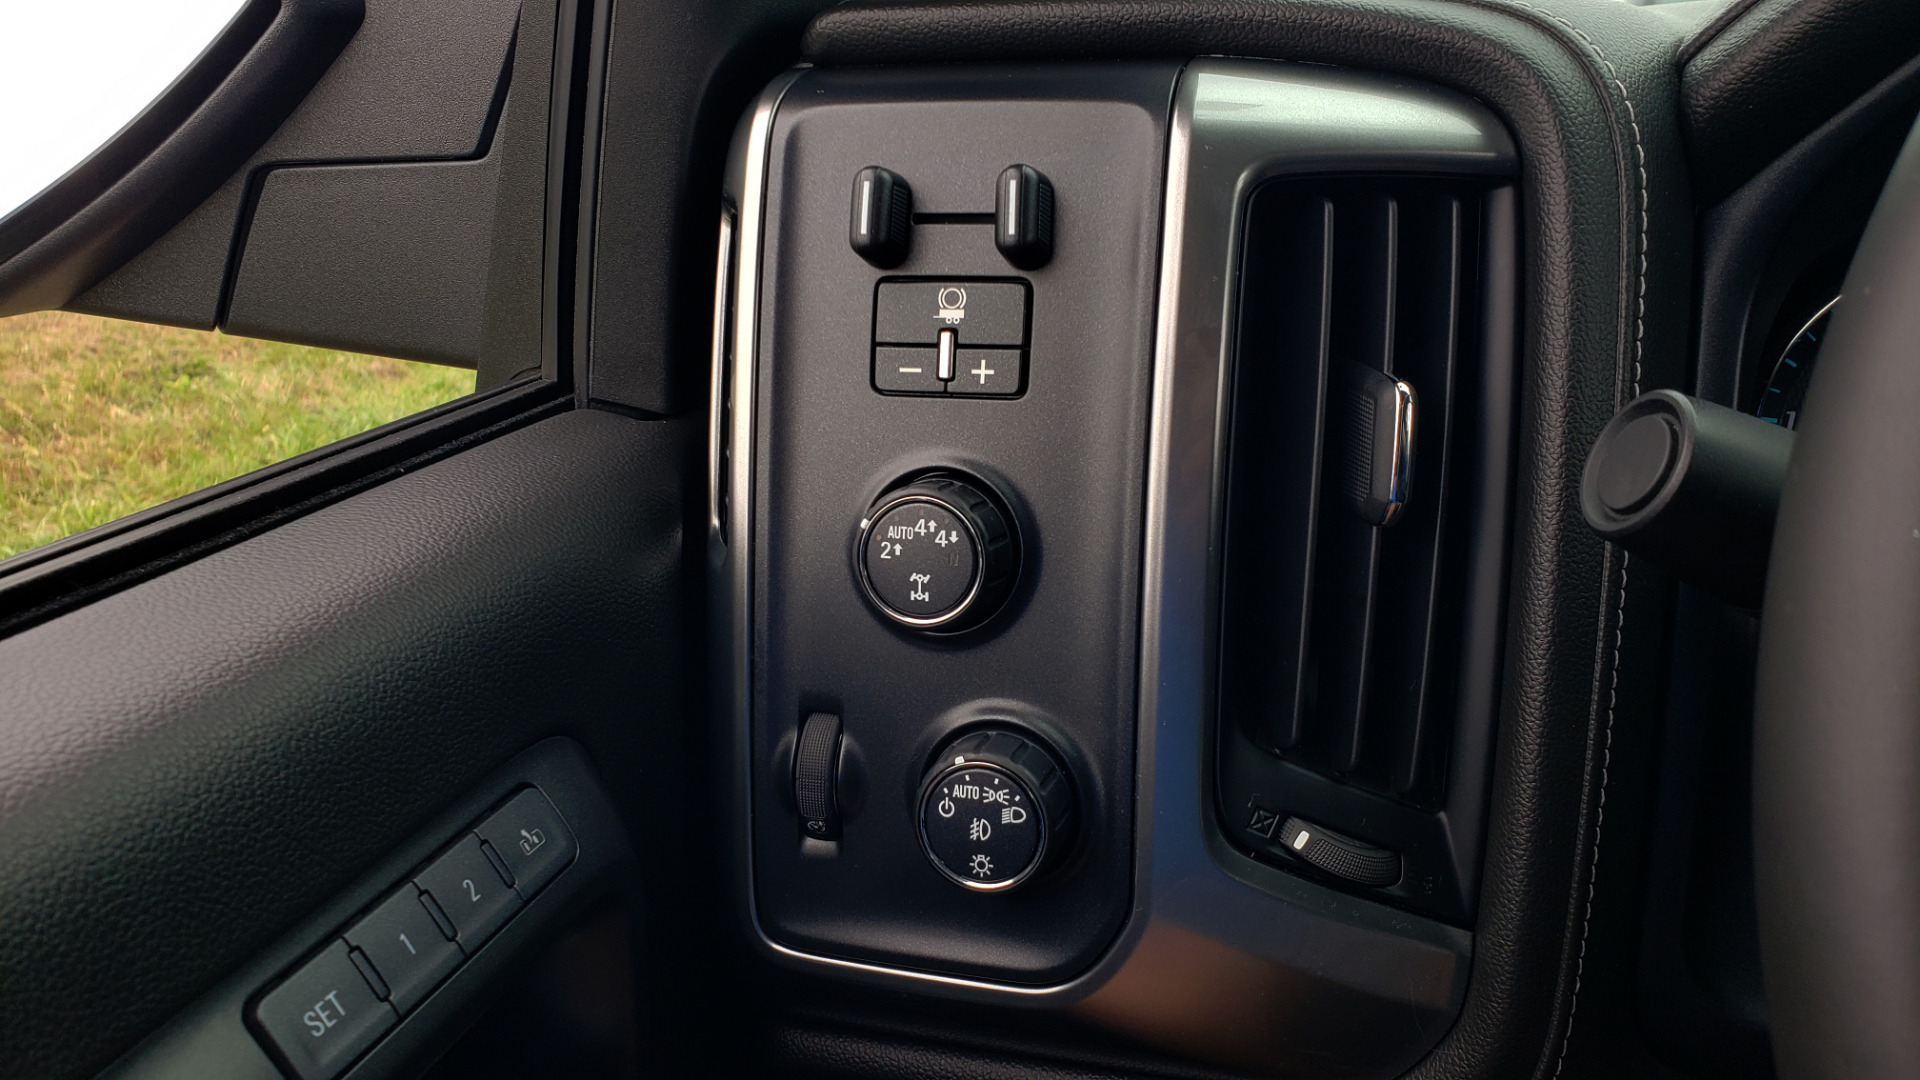 Used 2017 Chevrolet SILVERADO 1500 LTZ 4WD / NAV / BOSE / LEATHER / CAMERA / LOADED for sale Sold at Formula Imports in Charlotte NC 28227 7